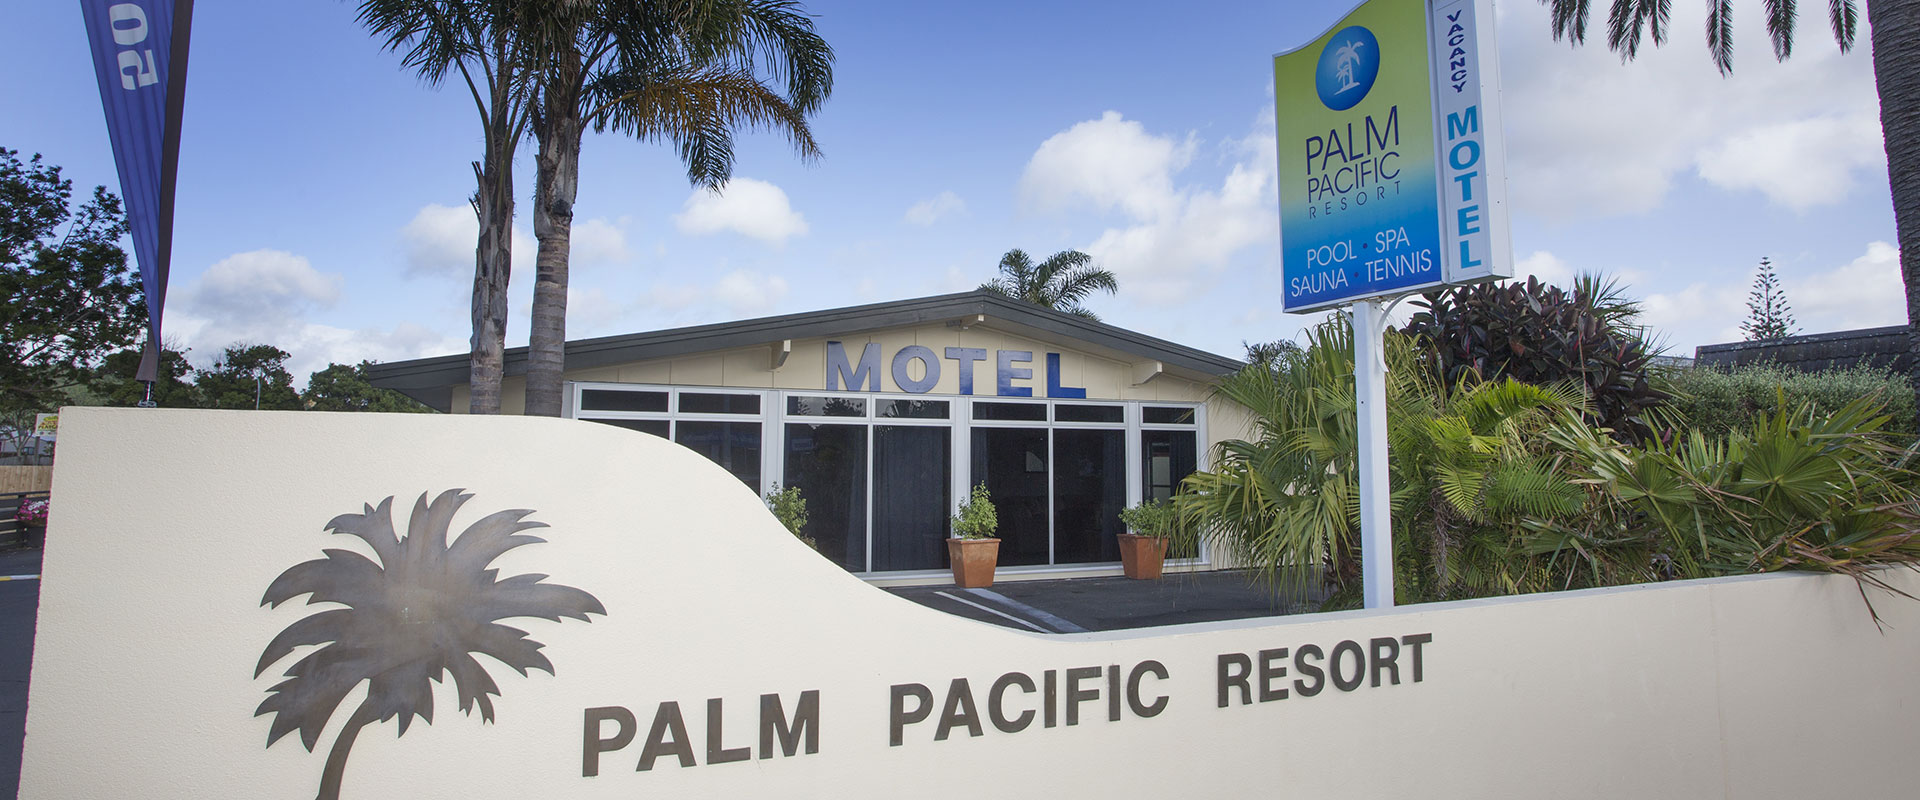 Palm Pacific Resort & Motel